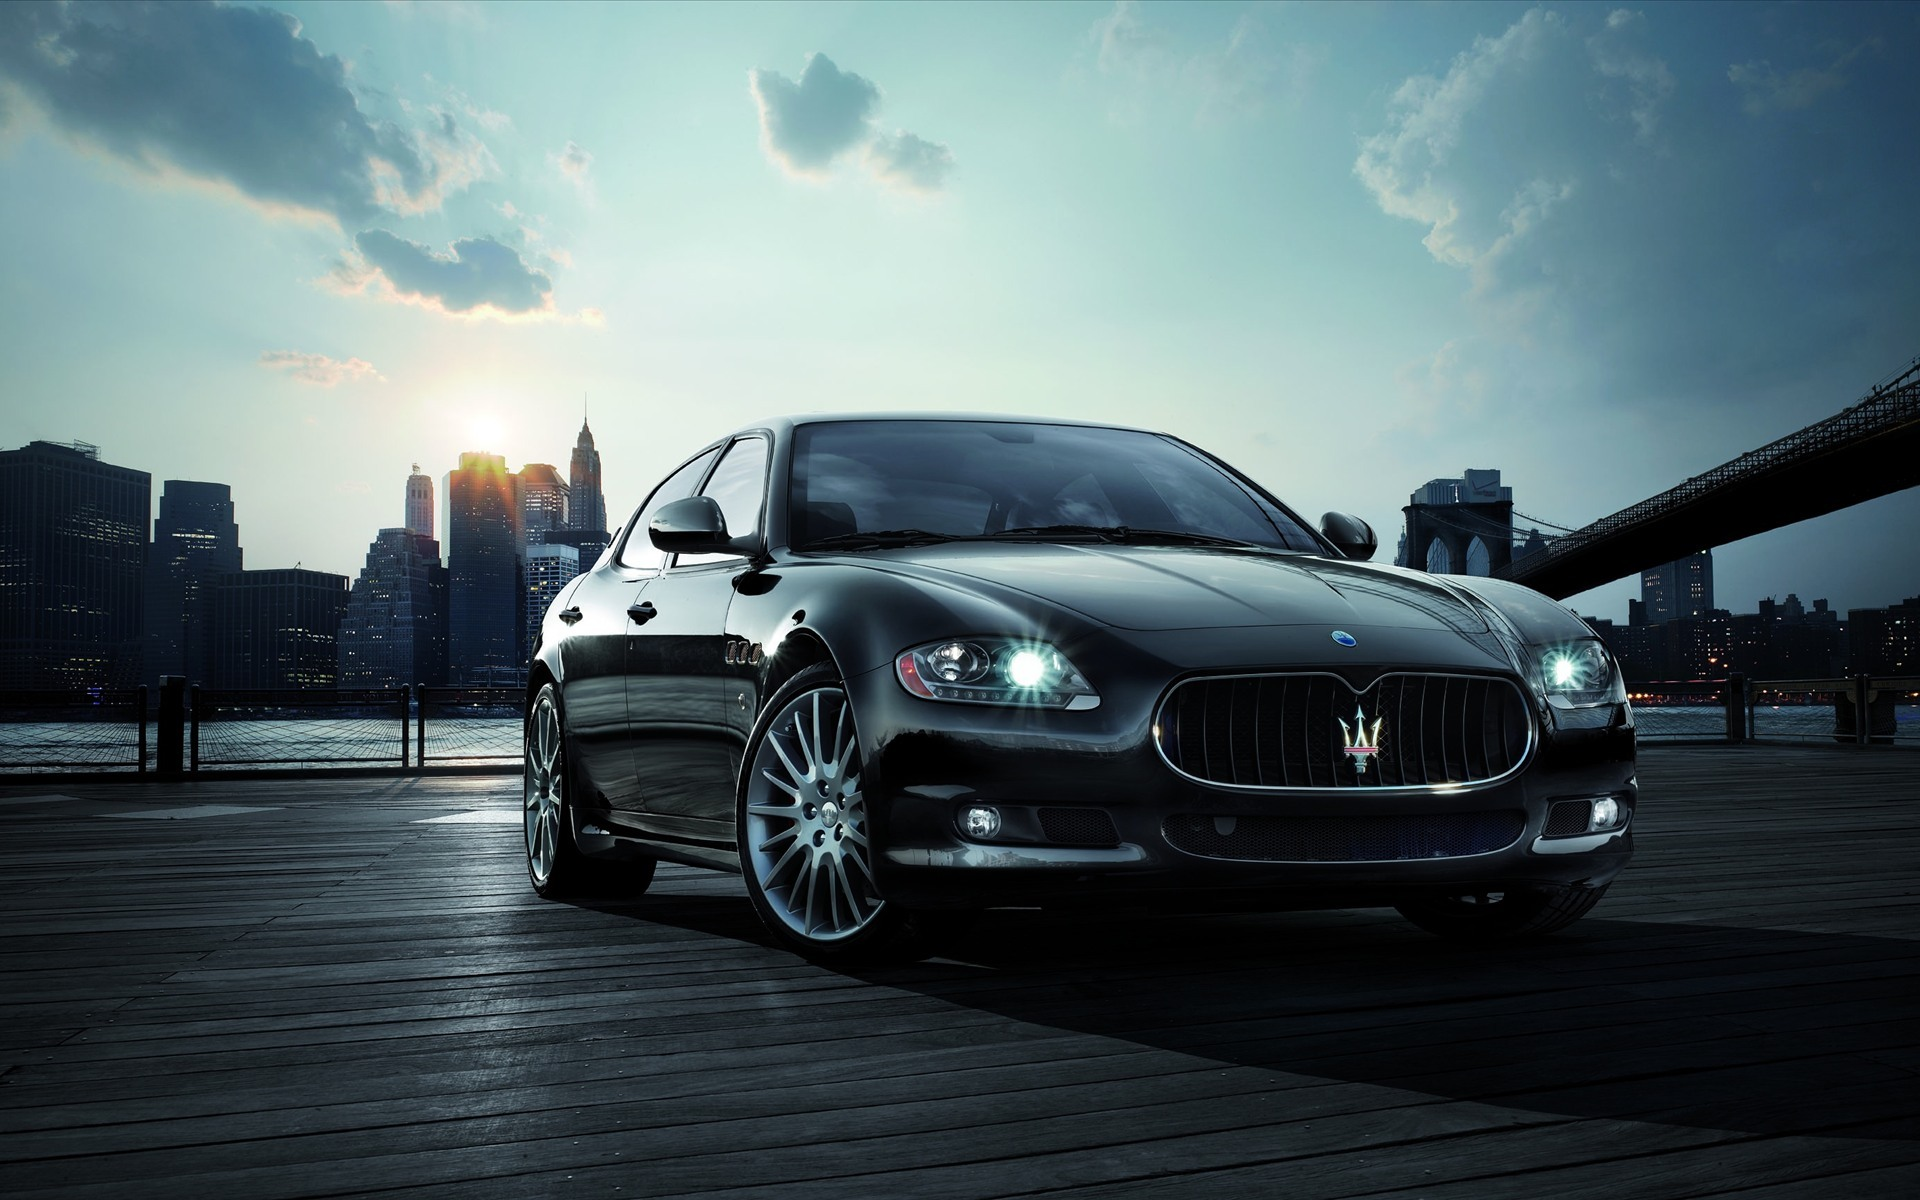 25291 download wallpaper Transport, Auto, Maserati screensavers and pictures for free